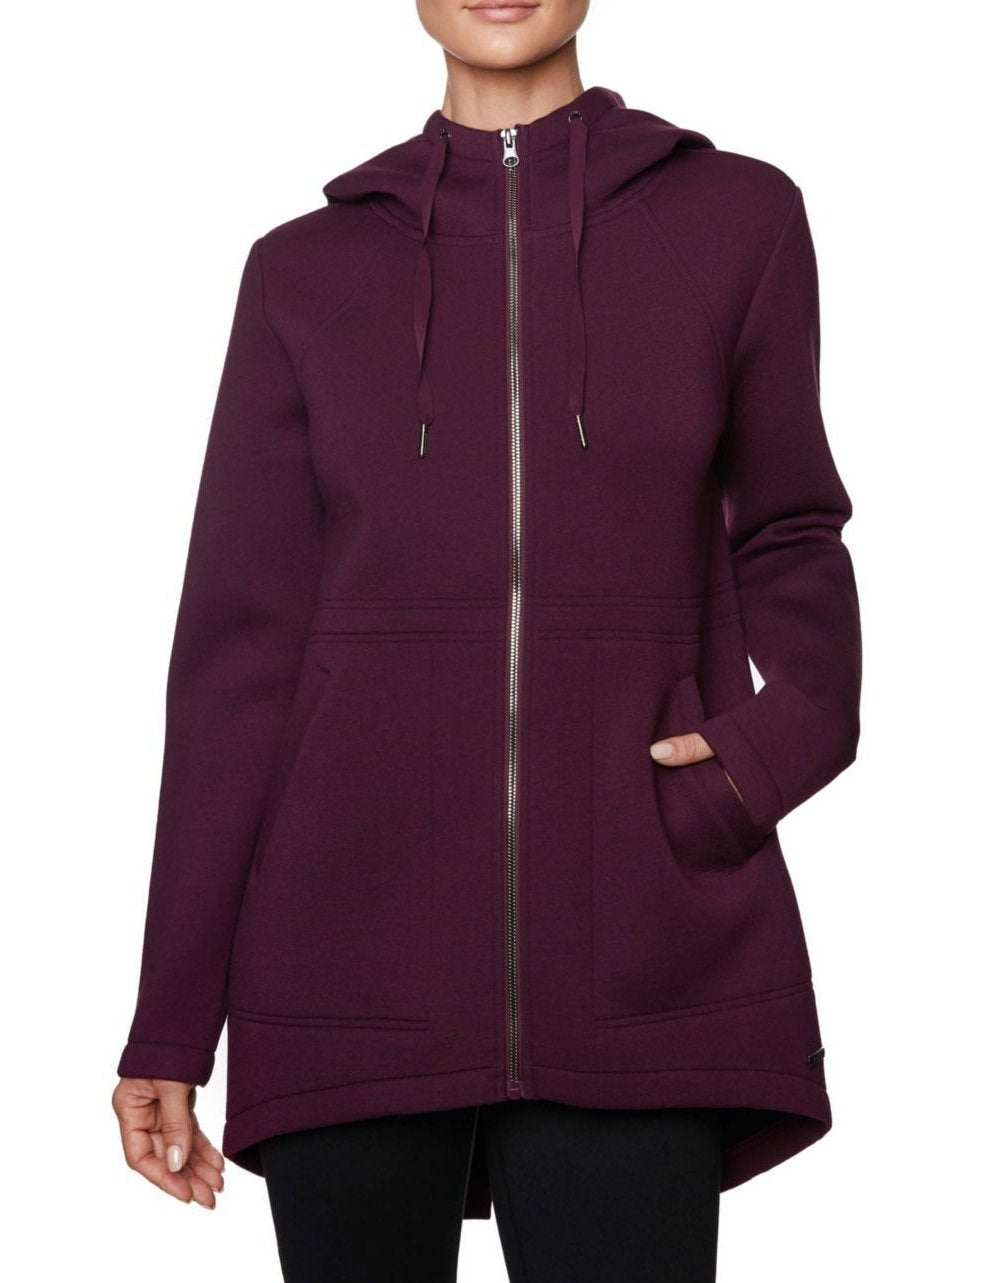 BONDED ANORAK JACKET WINE - APPAREL - Betsey Johnson